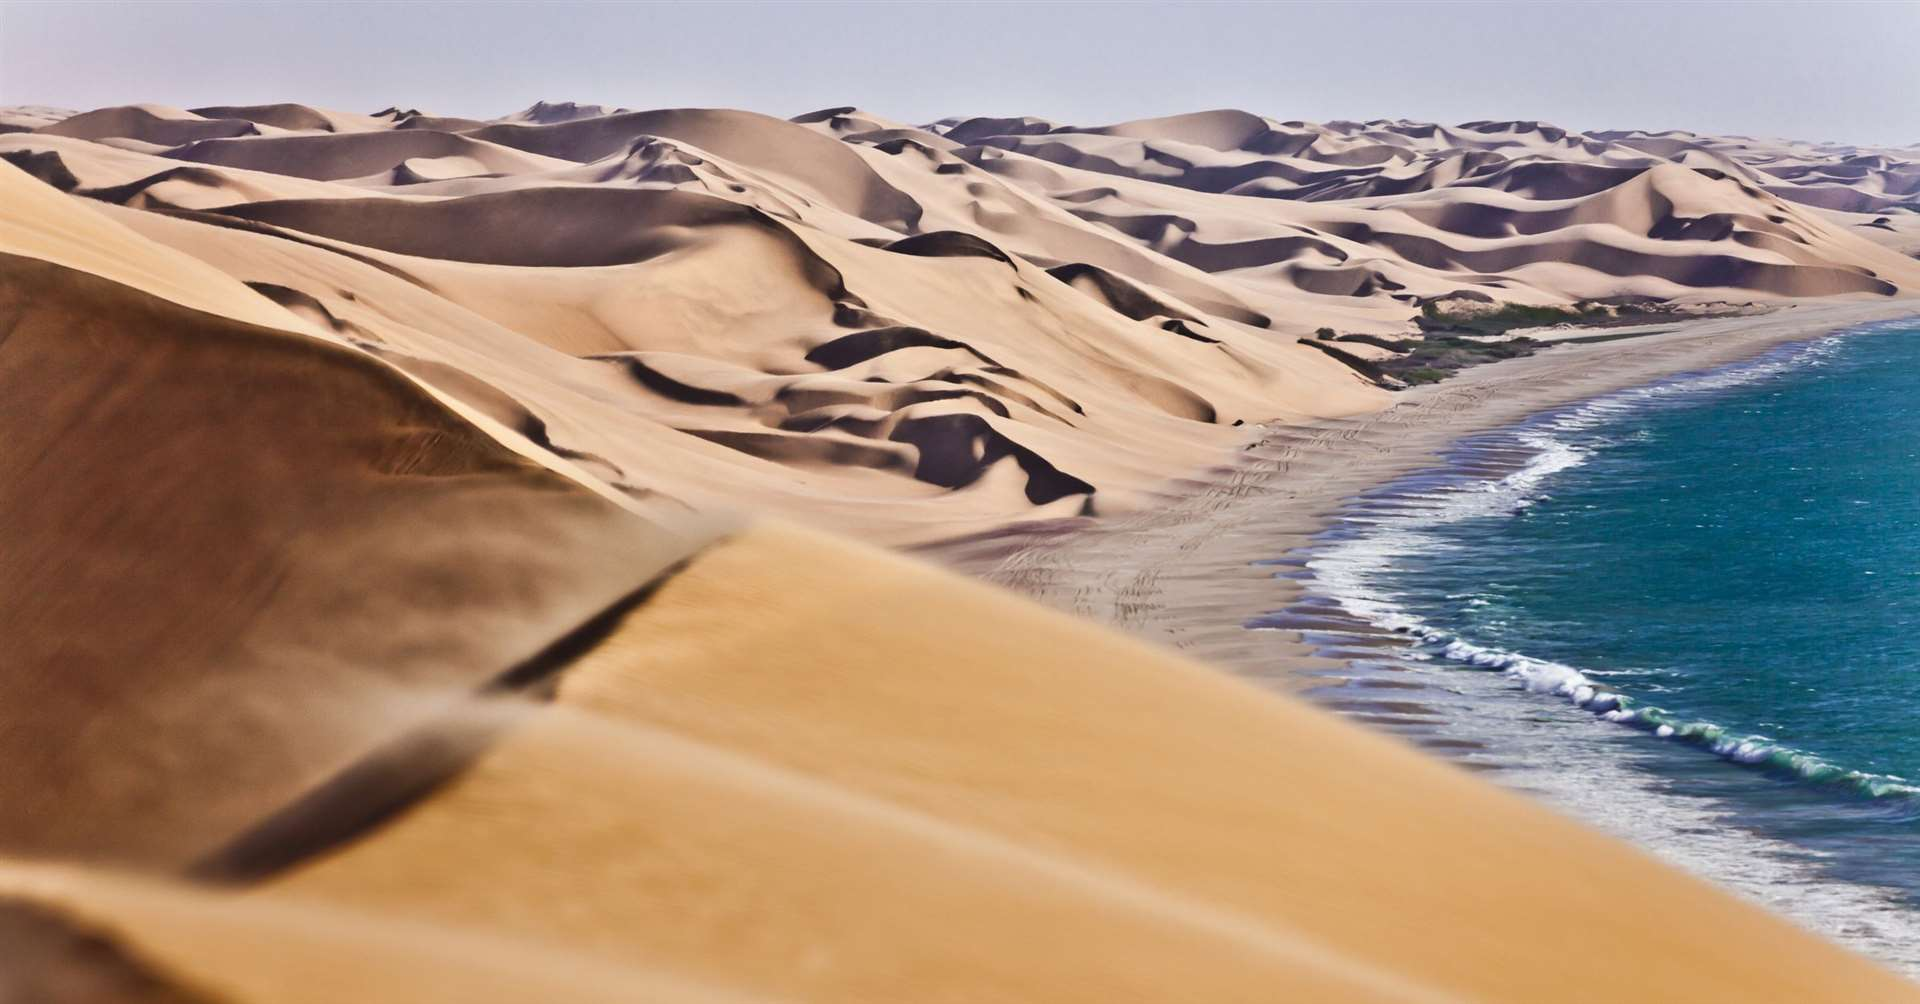 The world's oldest desert, the Namib Desert has existed for at least 55 million years, completely devoid of surface water but bisected by several dry riverbeds.